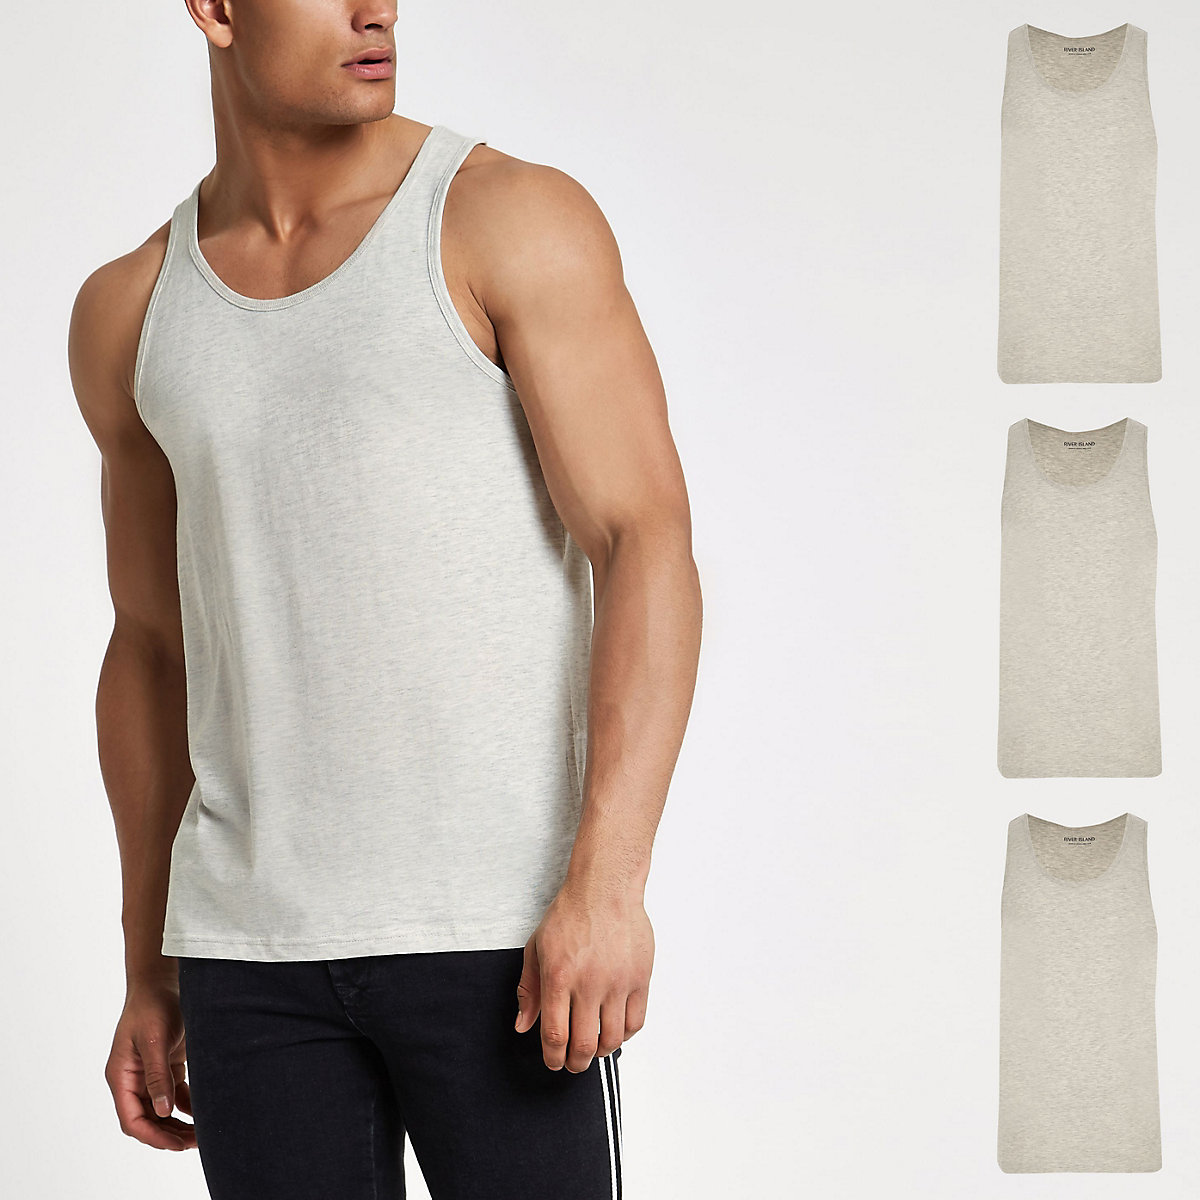 Grey vest multipack